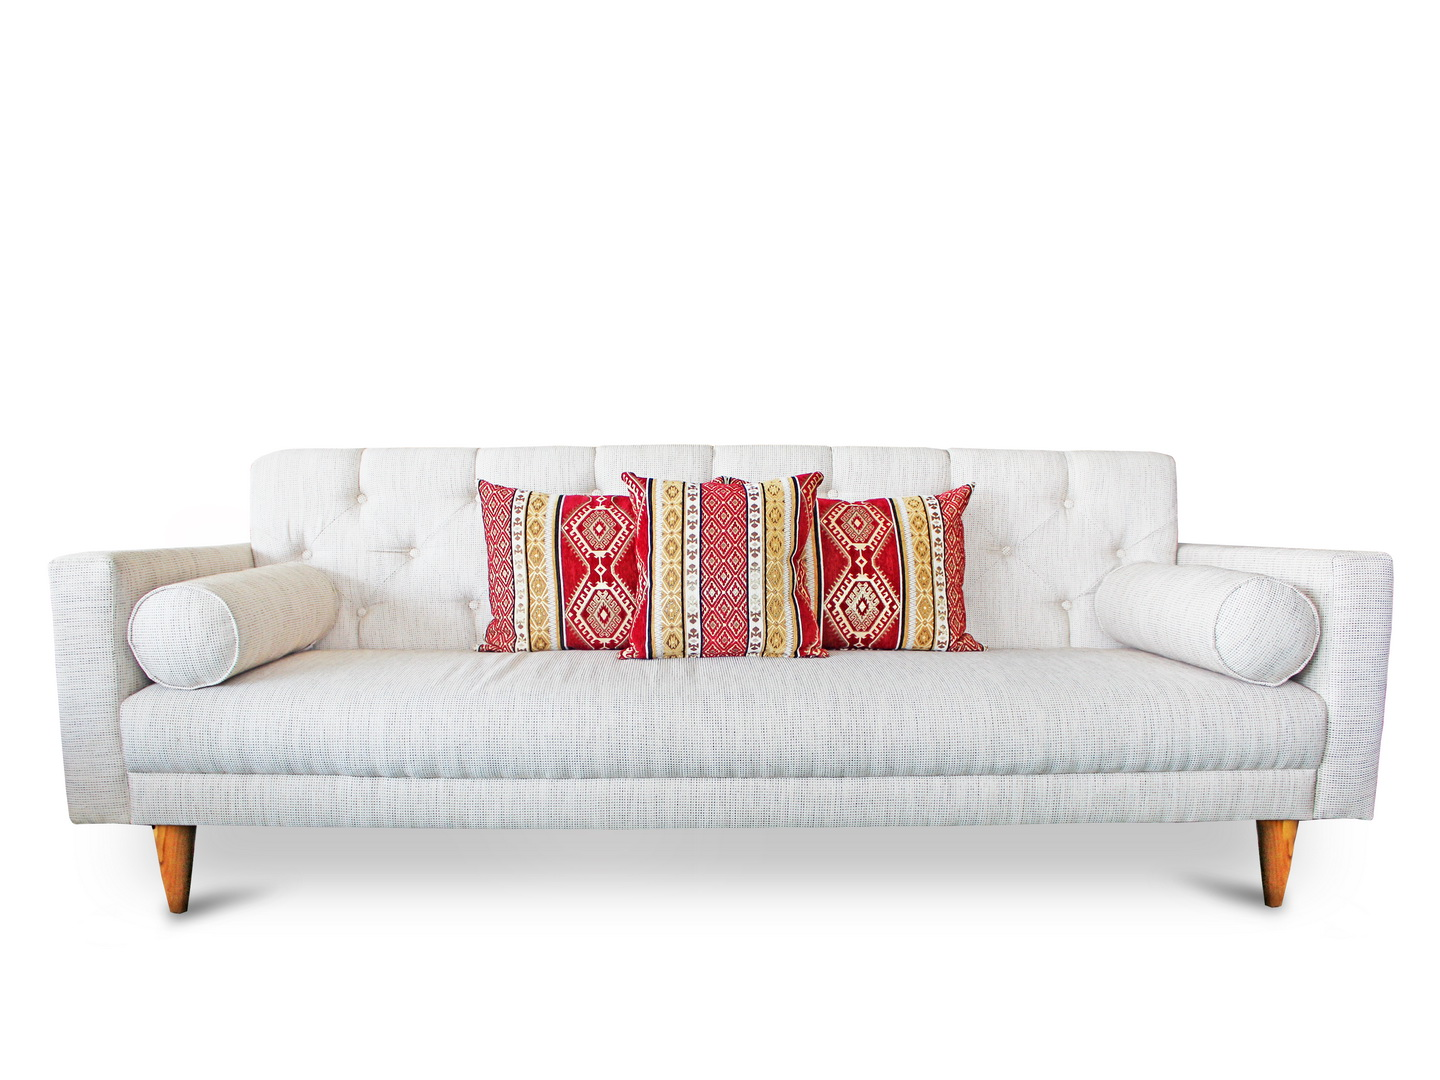 Bali sofa cool decoration and accessories exotic living for Sofa jakarta